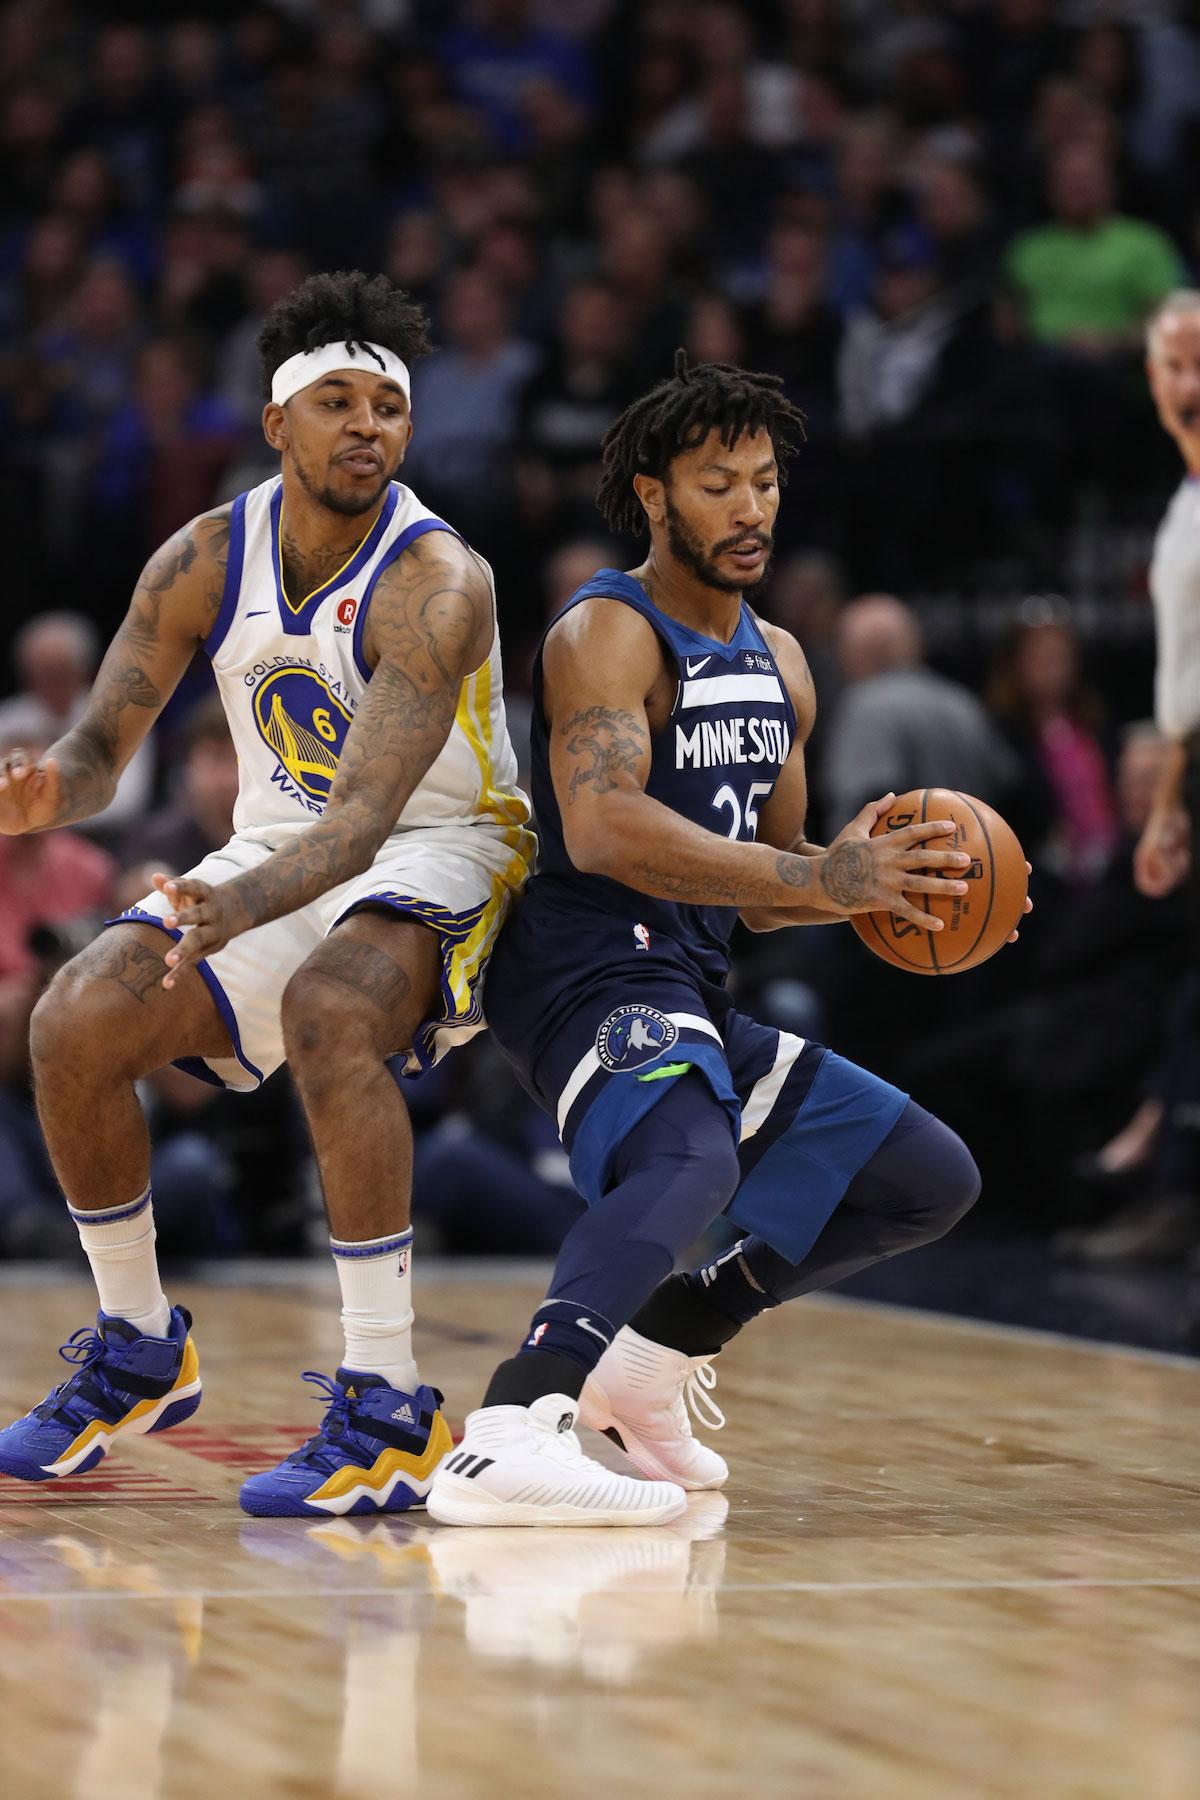 Derrick Rose #25 of the Minnesota Timberwolves handles the ball during the game against the Golden State Warriors on March 11, 2018 at Target Center in Minneapolis, Minnesota